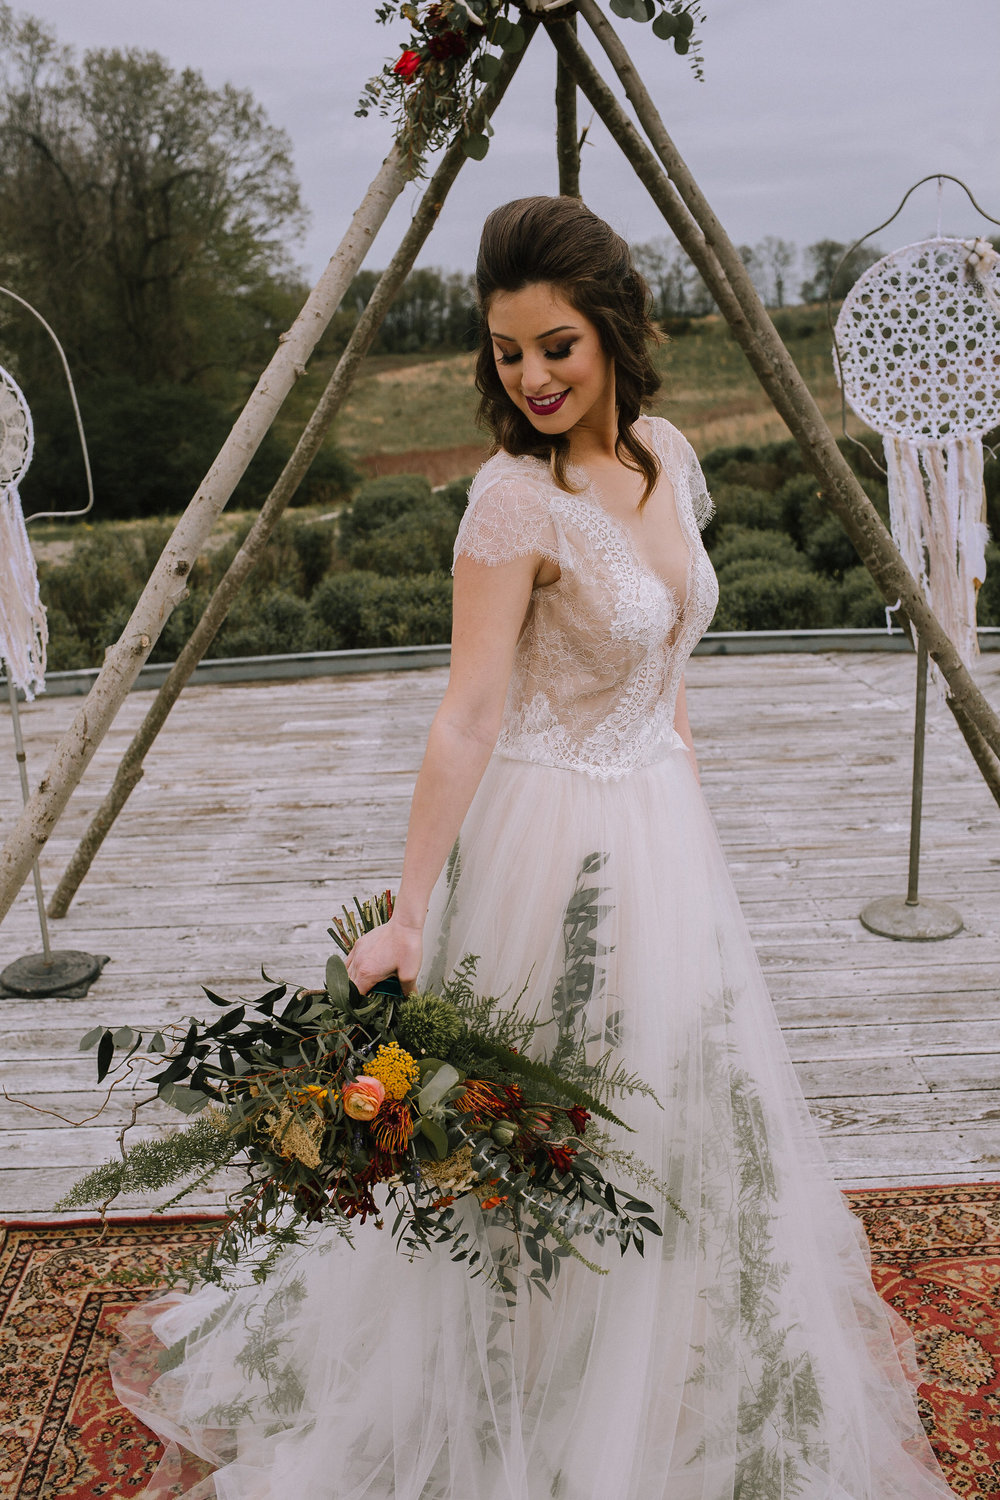 Melissa gown by Divine Atlier from Blanc de Blanc Bridal. Bohemian flower bouquet from Community Flower Shop at Chatham University Eden Hall campus wedding. Teepee and dreamcatchers from Vintage Alley Rentals.